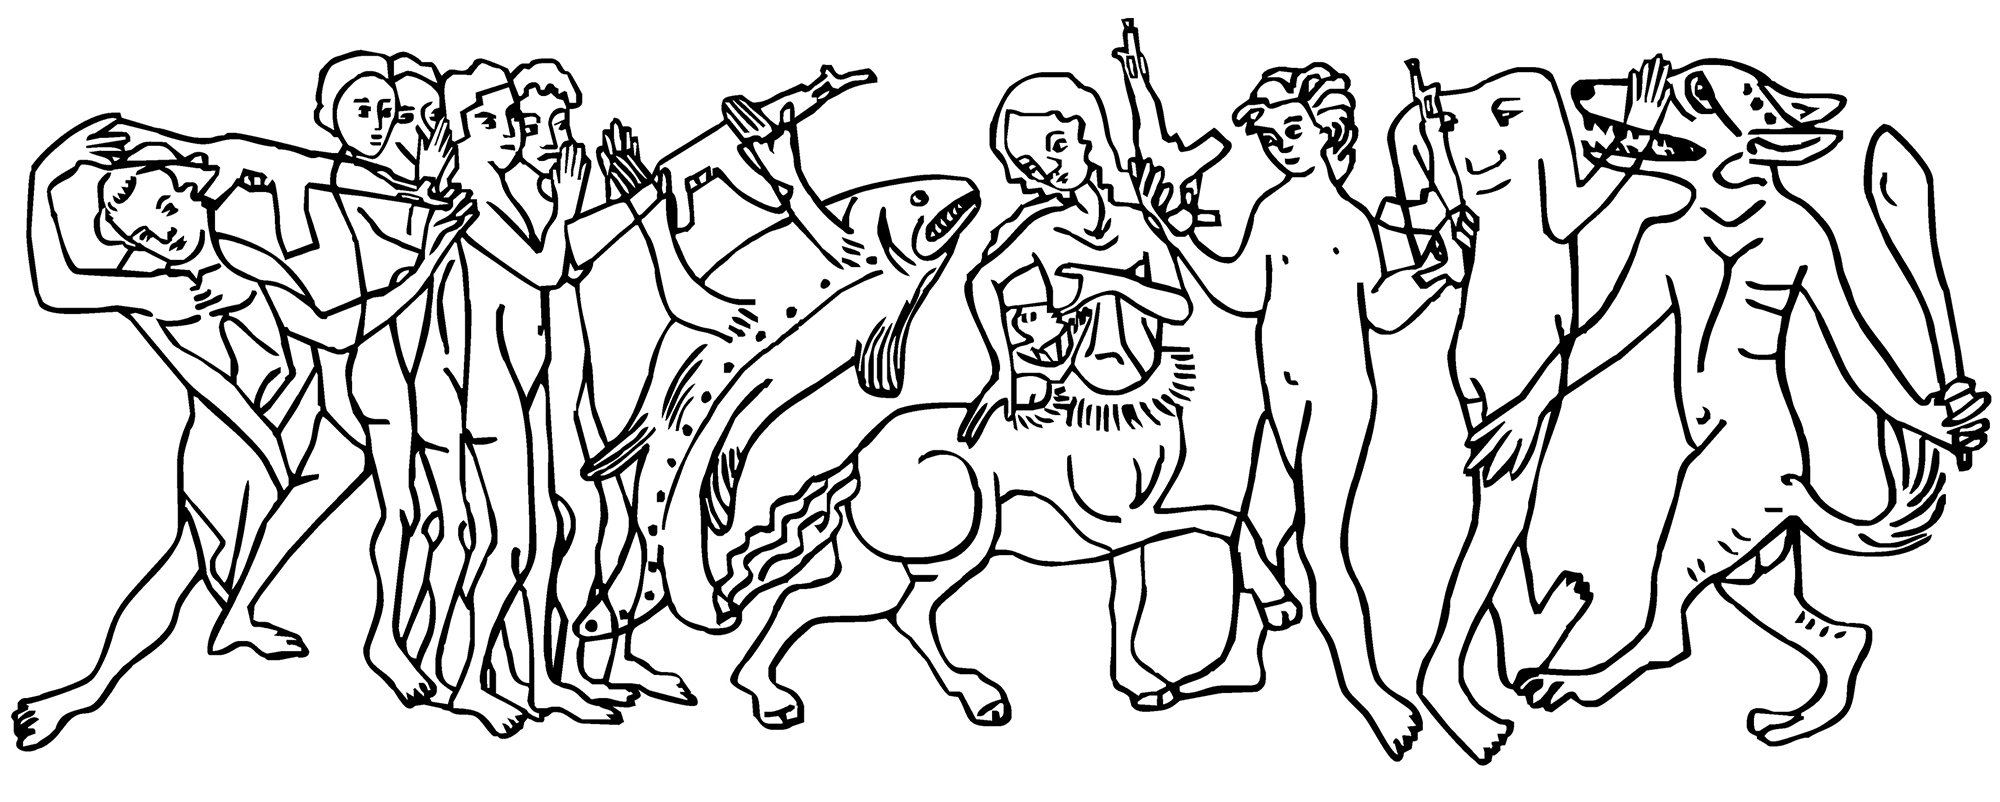 mural drawing in black and white with several half-human half-animal figures in a line also a female centaur